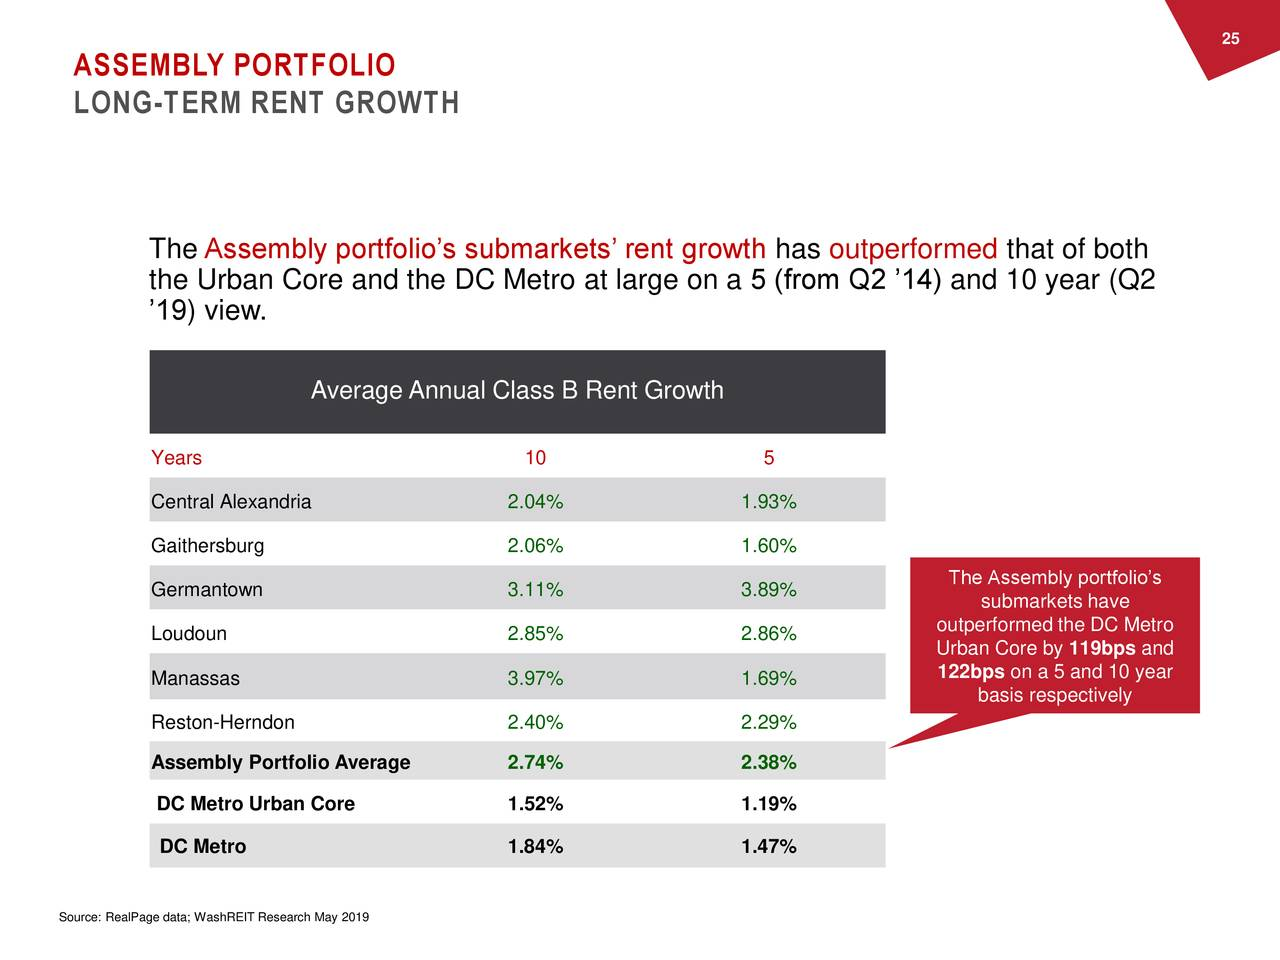 ASSEMBLY PORTFOLIO LONG-TERM RENT GROWTH The Assembly portfolio's submarkets' rent growth has outperformed that of both the Urban Core and the DC Metro at large on a 5 (from Q2 '14) and 10 year (Q2 '19) view. Average Annual Class B Rent Growth Years 10 5 Central Alexandria 2.04% 1.93% Gaithersburg 2.06% 1.60% Germantown 3.11% 3.89% The Assembly portfolio's submarkets have Loudoun 2.85% 2.86% outperformed the DC Metro Urban Core by 119bps and 122bps on a 5 and 10 year Manassas 3.97% 1.69% basis respectively Reston-Herndon 2.40% 2.29% Assembly Portfolio Average 2.74% 2.38% DC Metro Urban Core 1.52% 1.19% DC Metro 1.84% 1.47% Source: RealPage data; WashREIT Research May 2019